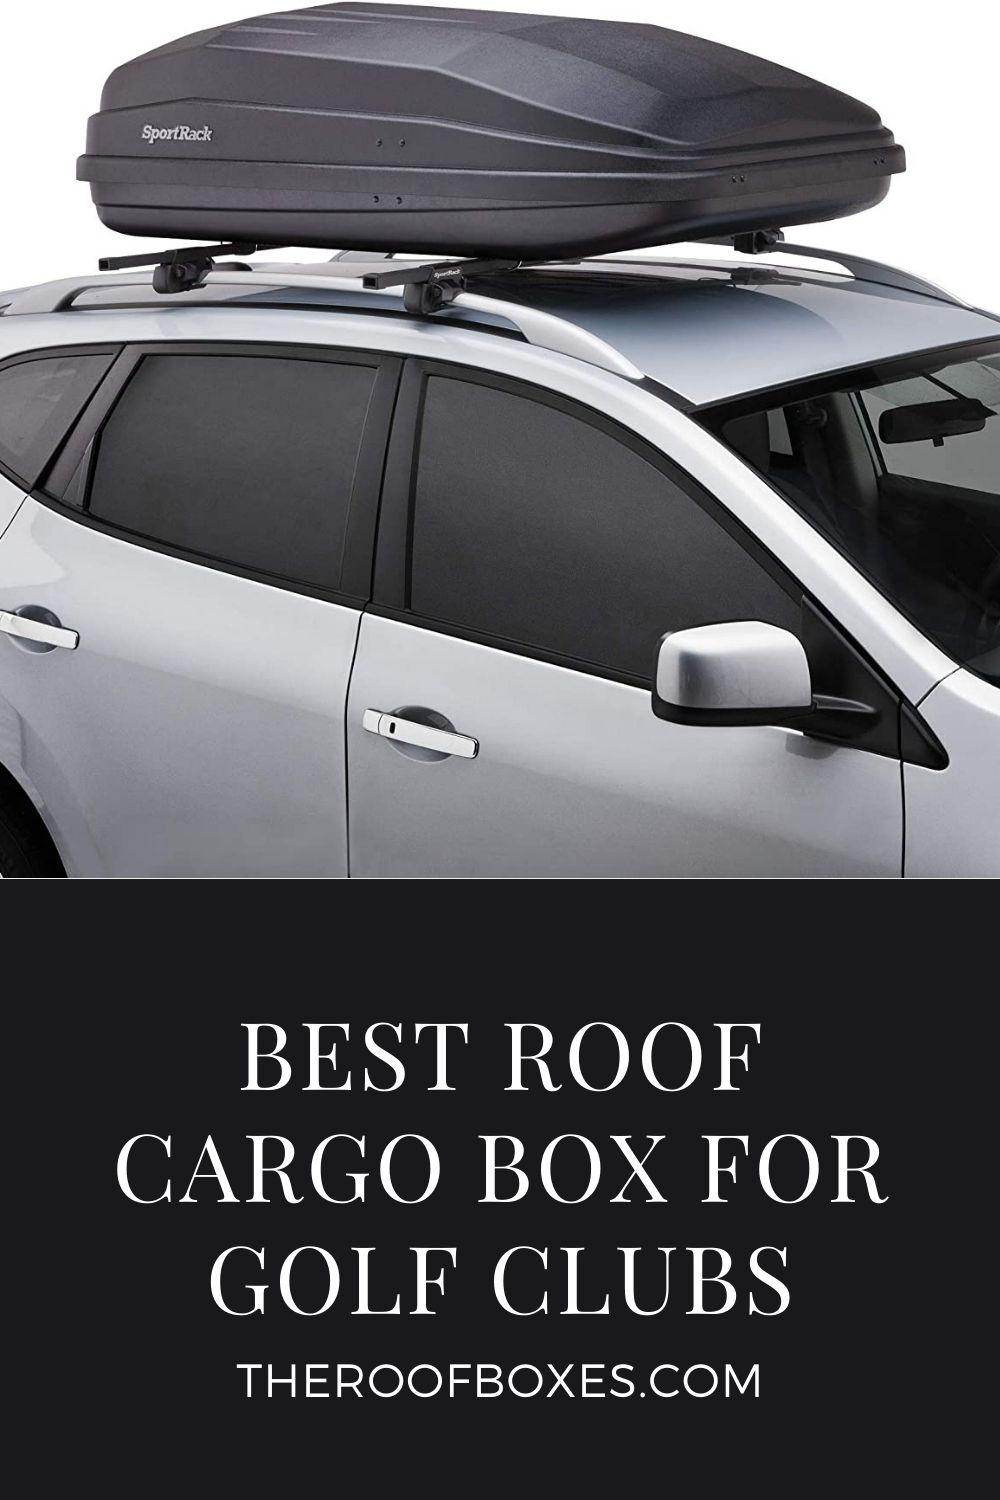 Best Roof Cargo Box For Golf Clubs